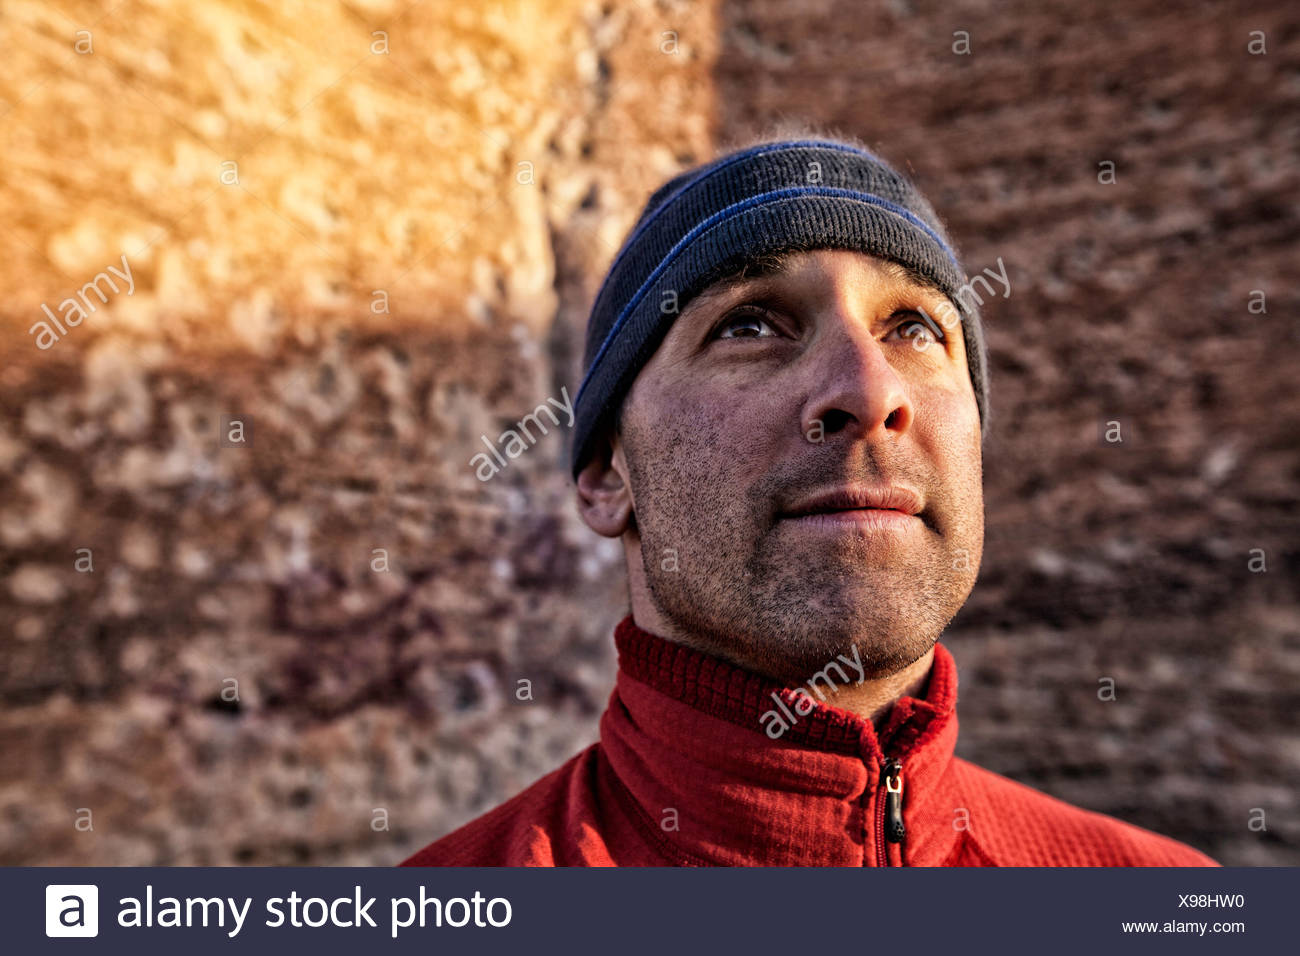 Portrait of rock climber looking up at rocks, Colorado, America, USA - Stock Image